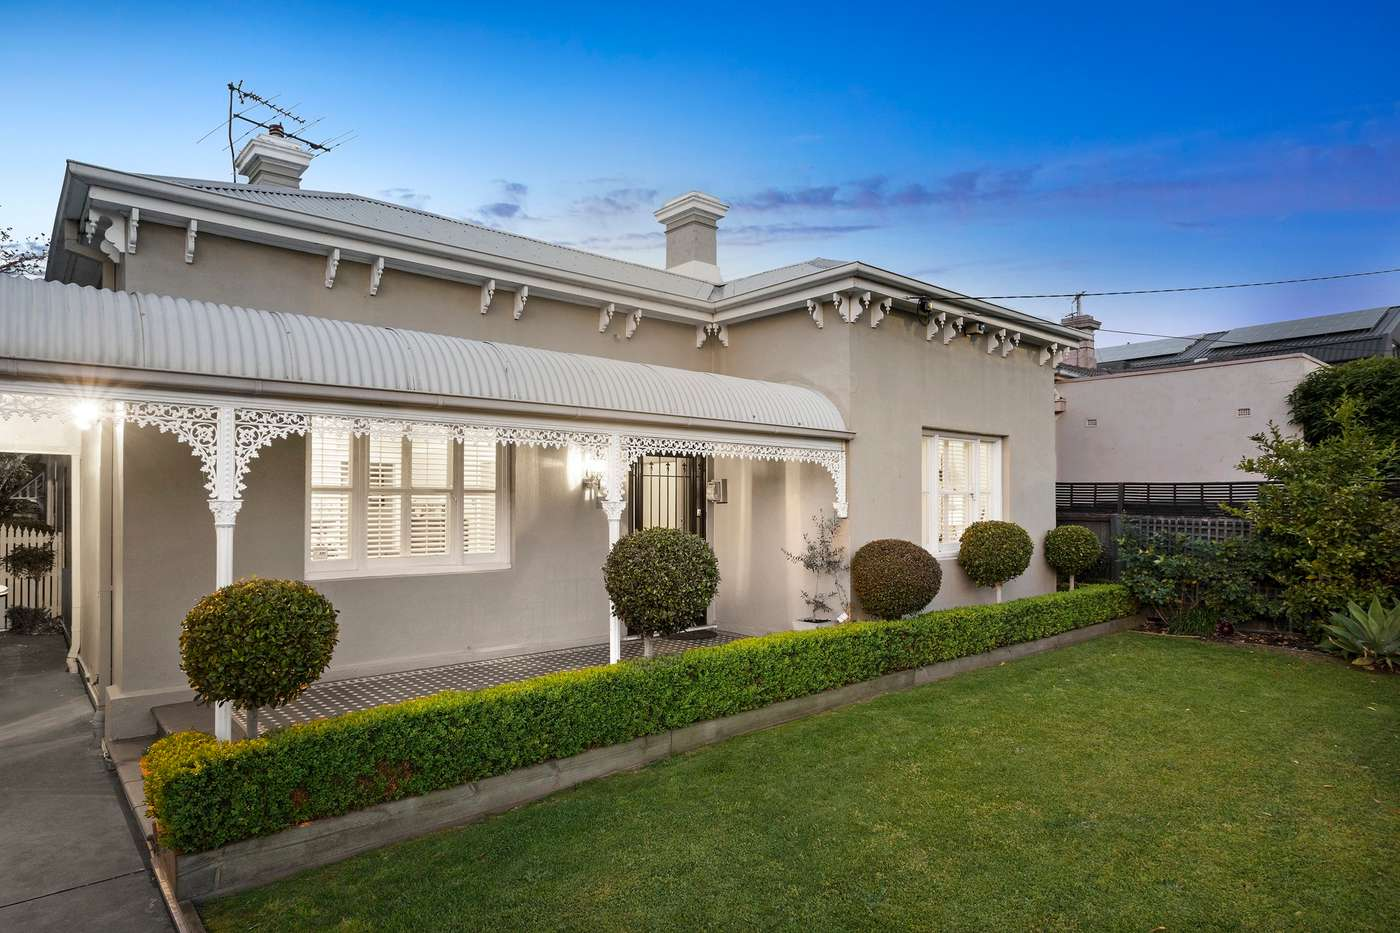 Main view of Homely house listing, 30 The Avenue, St Kilda East, VIC 3183